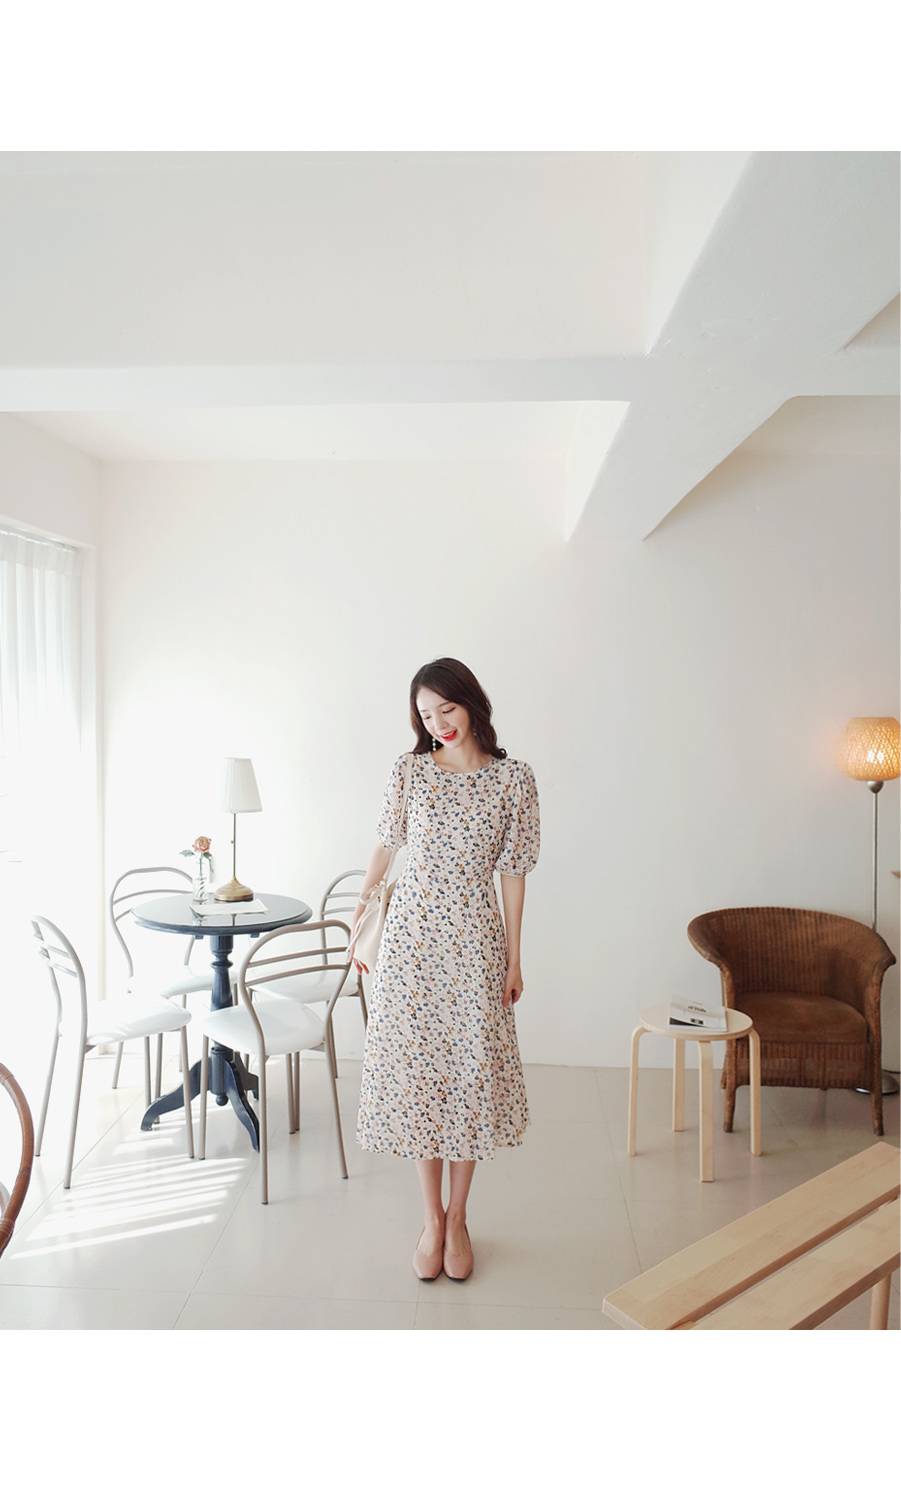 Cheung Soo poten dress